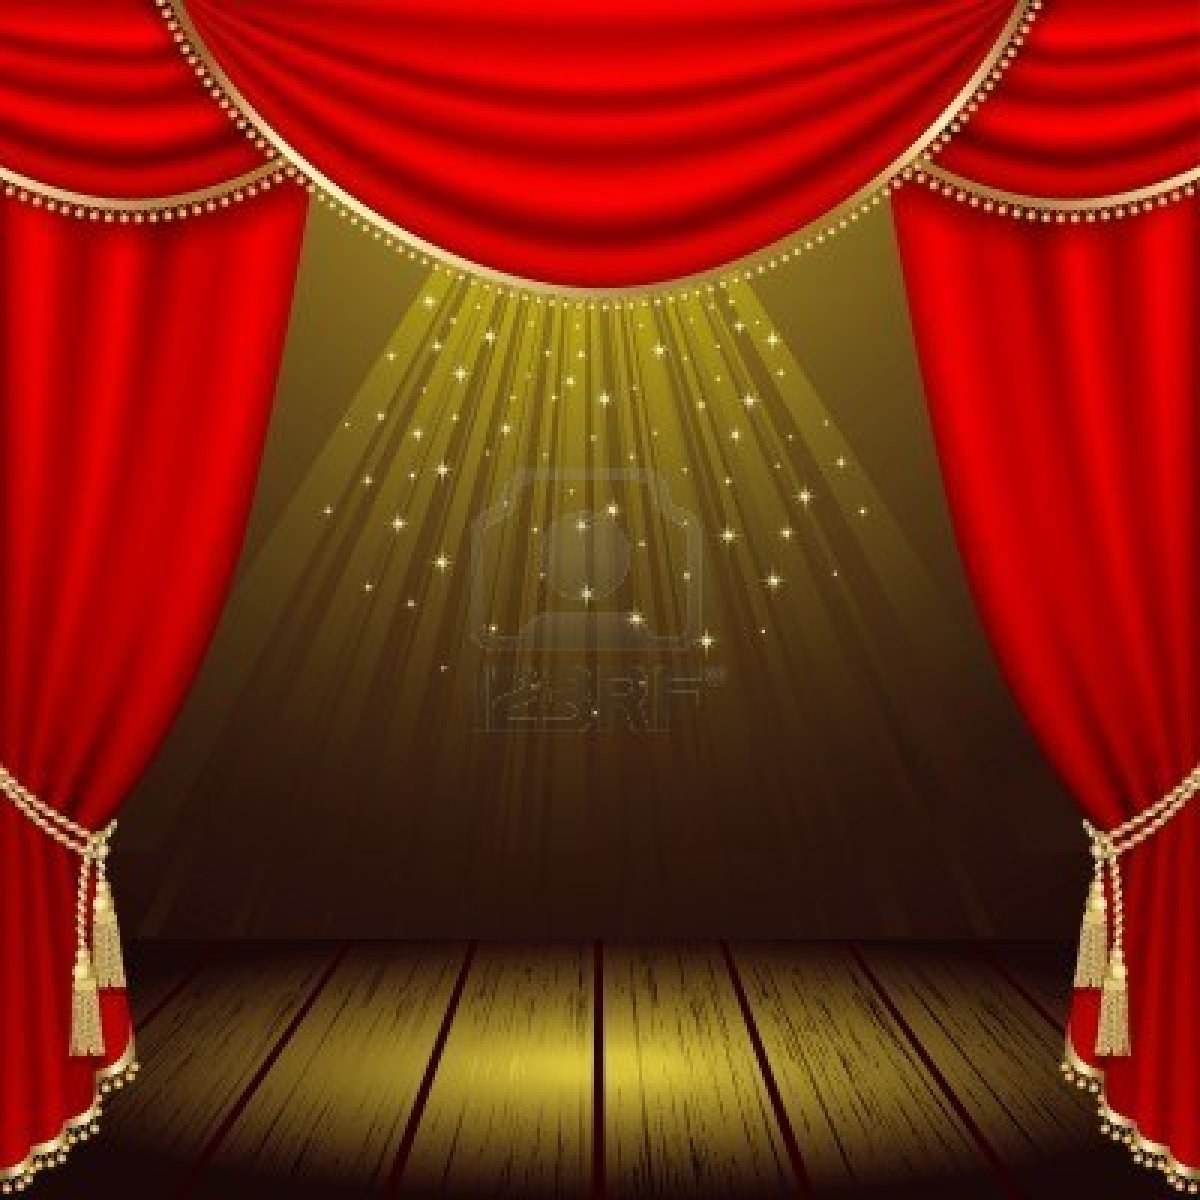 Teatro para alumnado de infantil cp enrique alonso for Theatre curtains psd